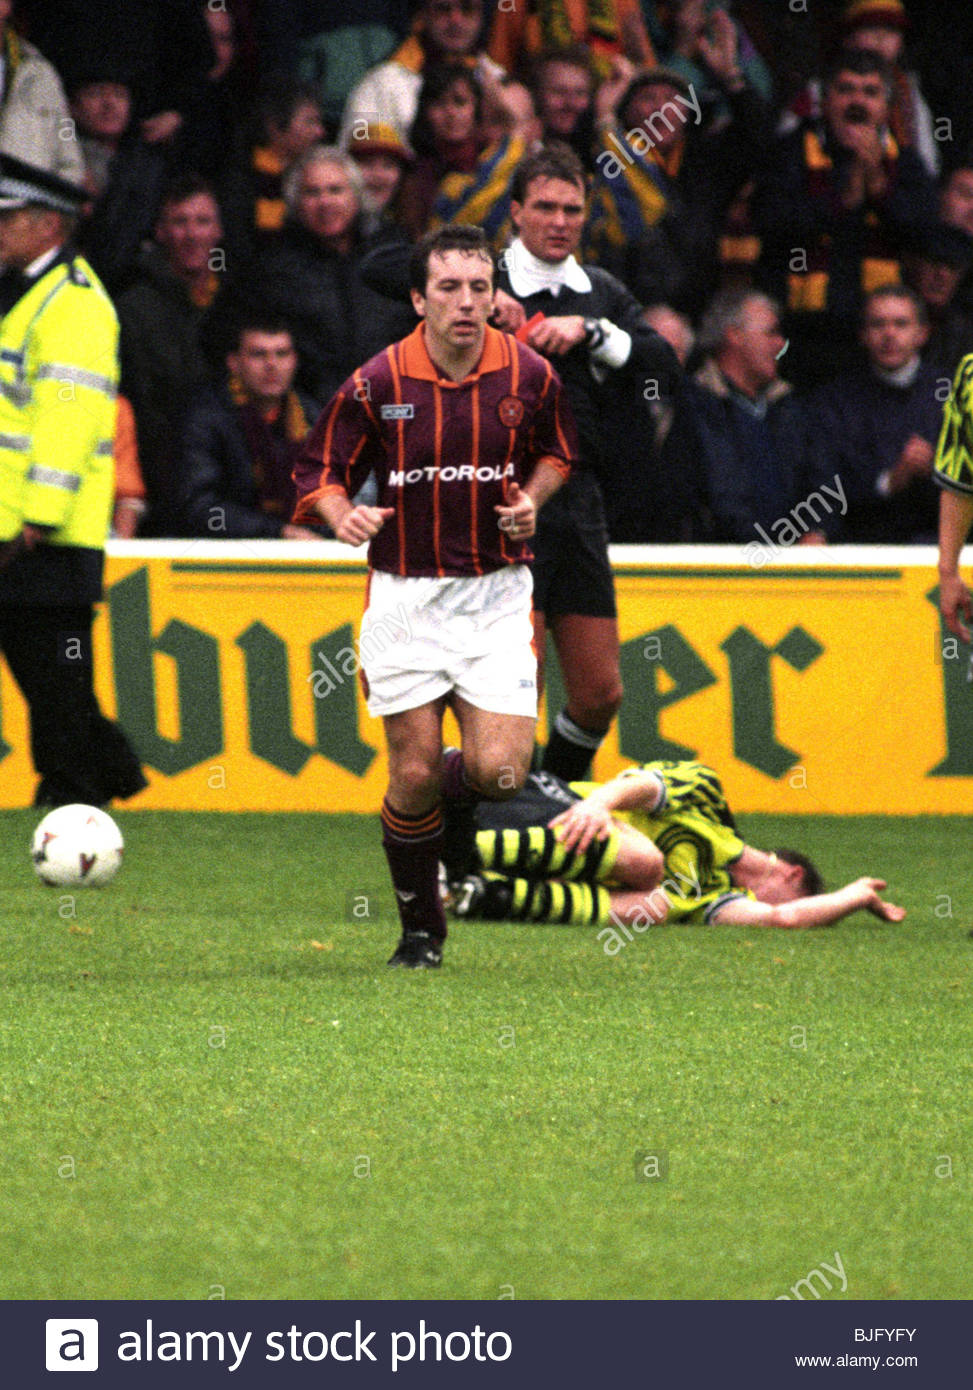 28/09/94 UEFA CUP MOTHERWELL V BORUSSIA DORTMUND FIR PARK - MOTHERWELL Motherwell's Rab Shannon is sent off - Stock Image